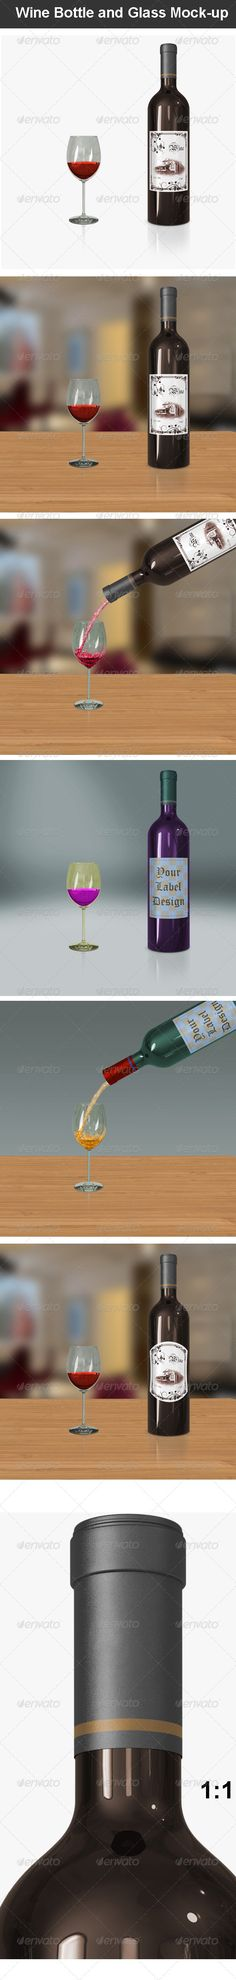 Wine Bottle and Glass Mockup — Photoshop PSD #clean #mock-up • Available here → https://graphicriver.net/item/wine-bottle-and-glass-mockup/7232479?ref=pxcr